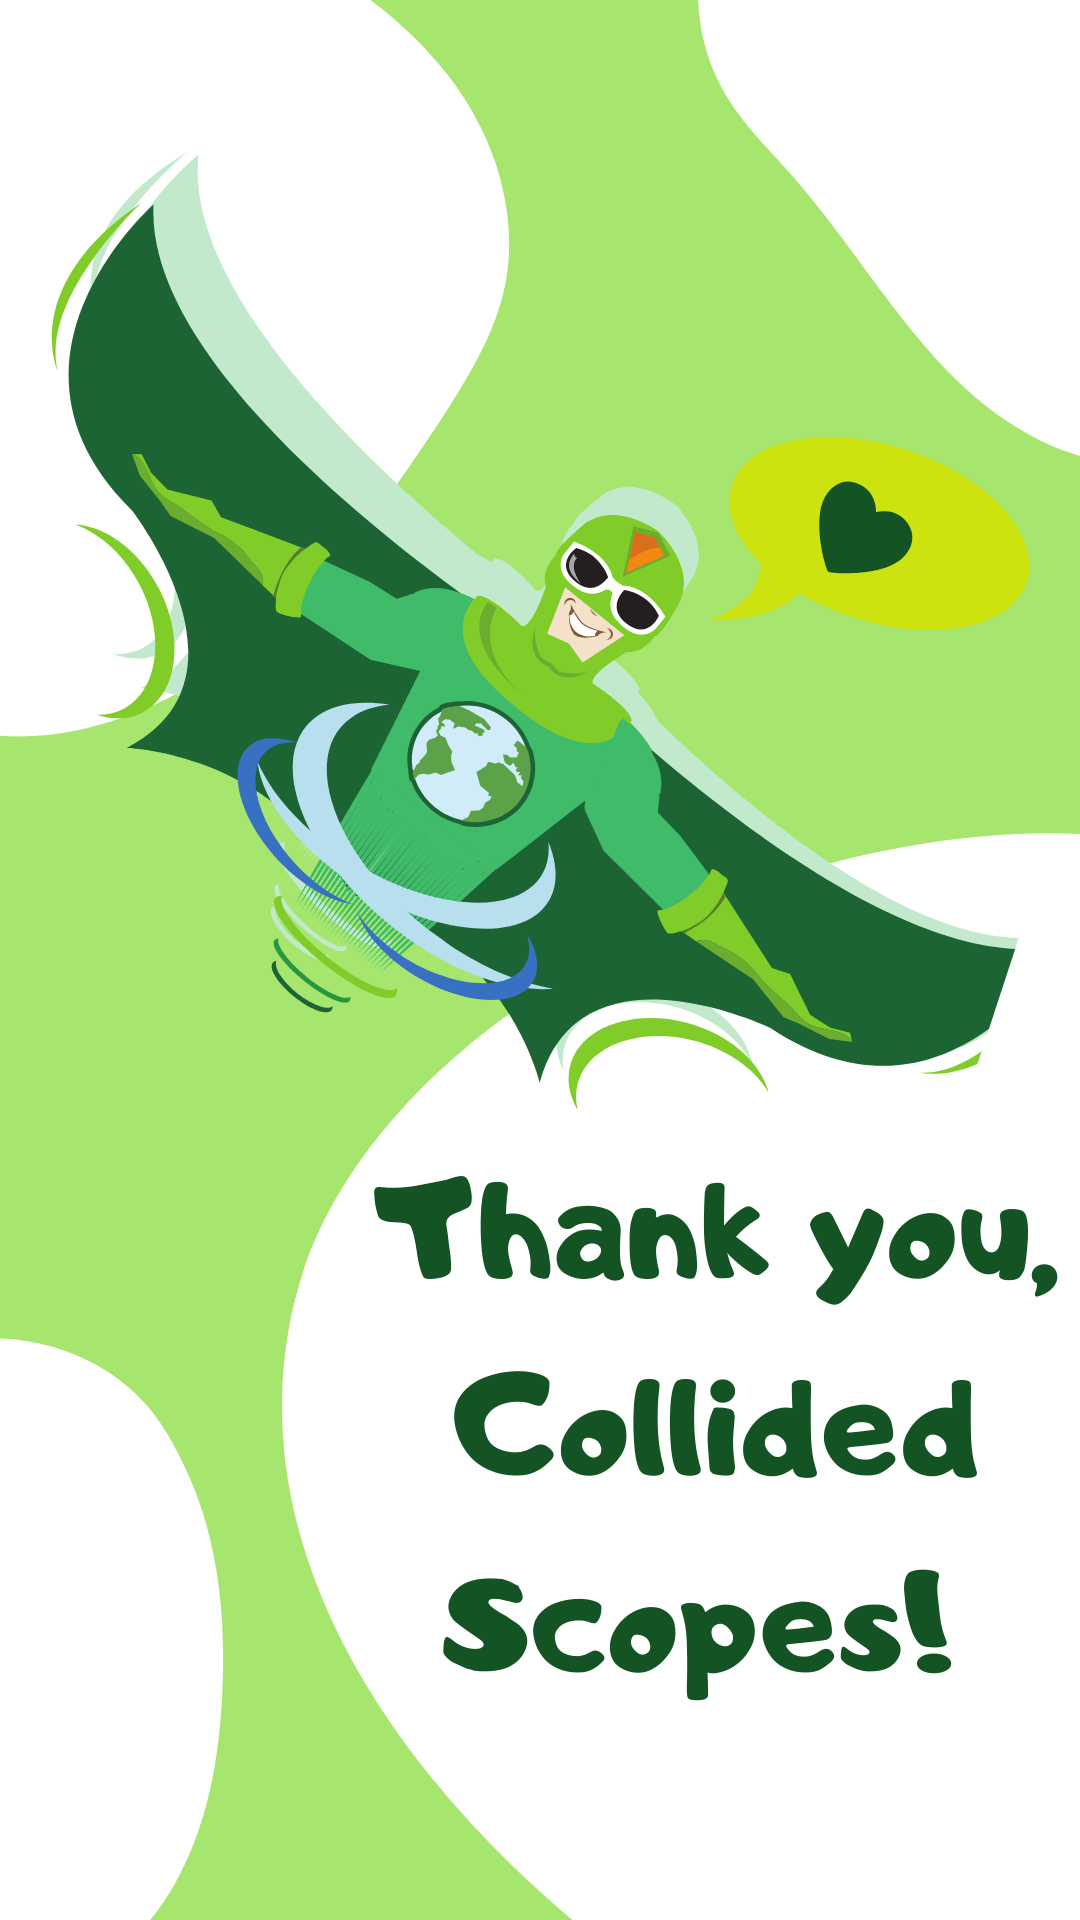 Thank you, Collided Scopes!